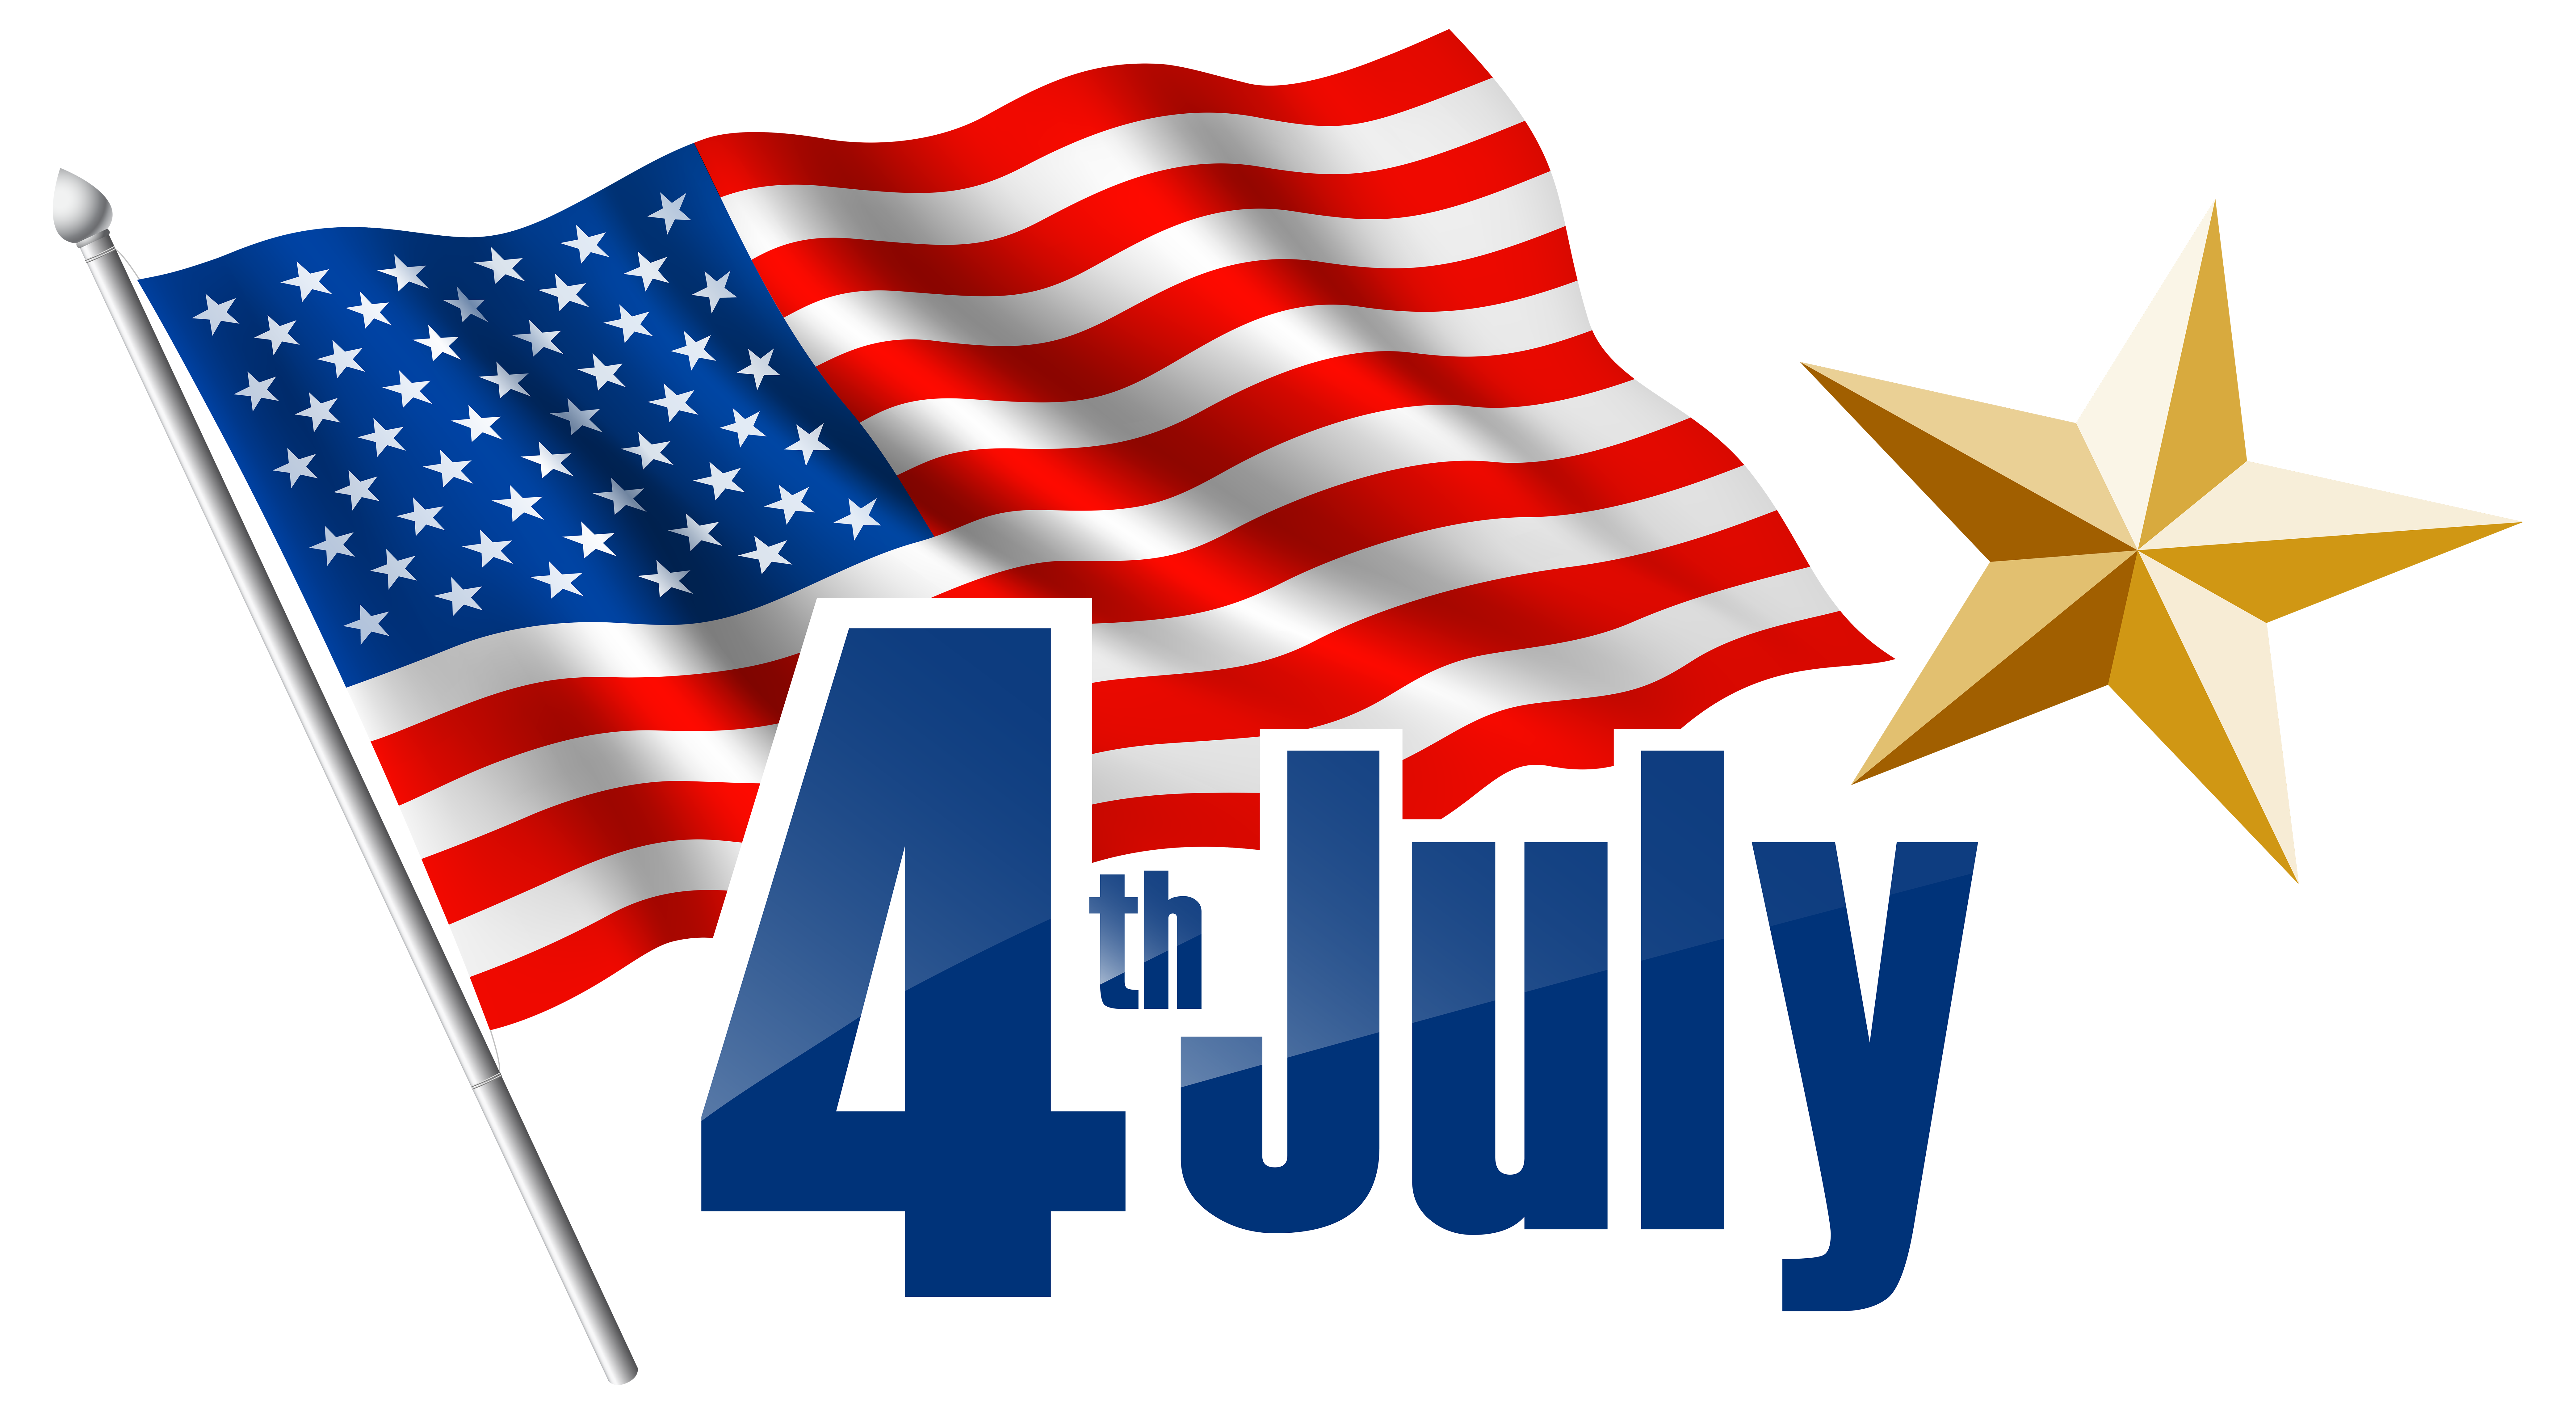 Hotdog clipart 4th july. Independence day scalable vector